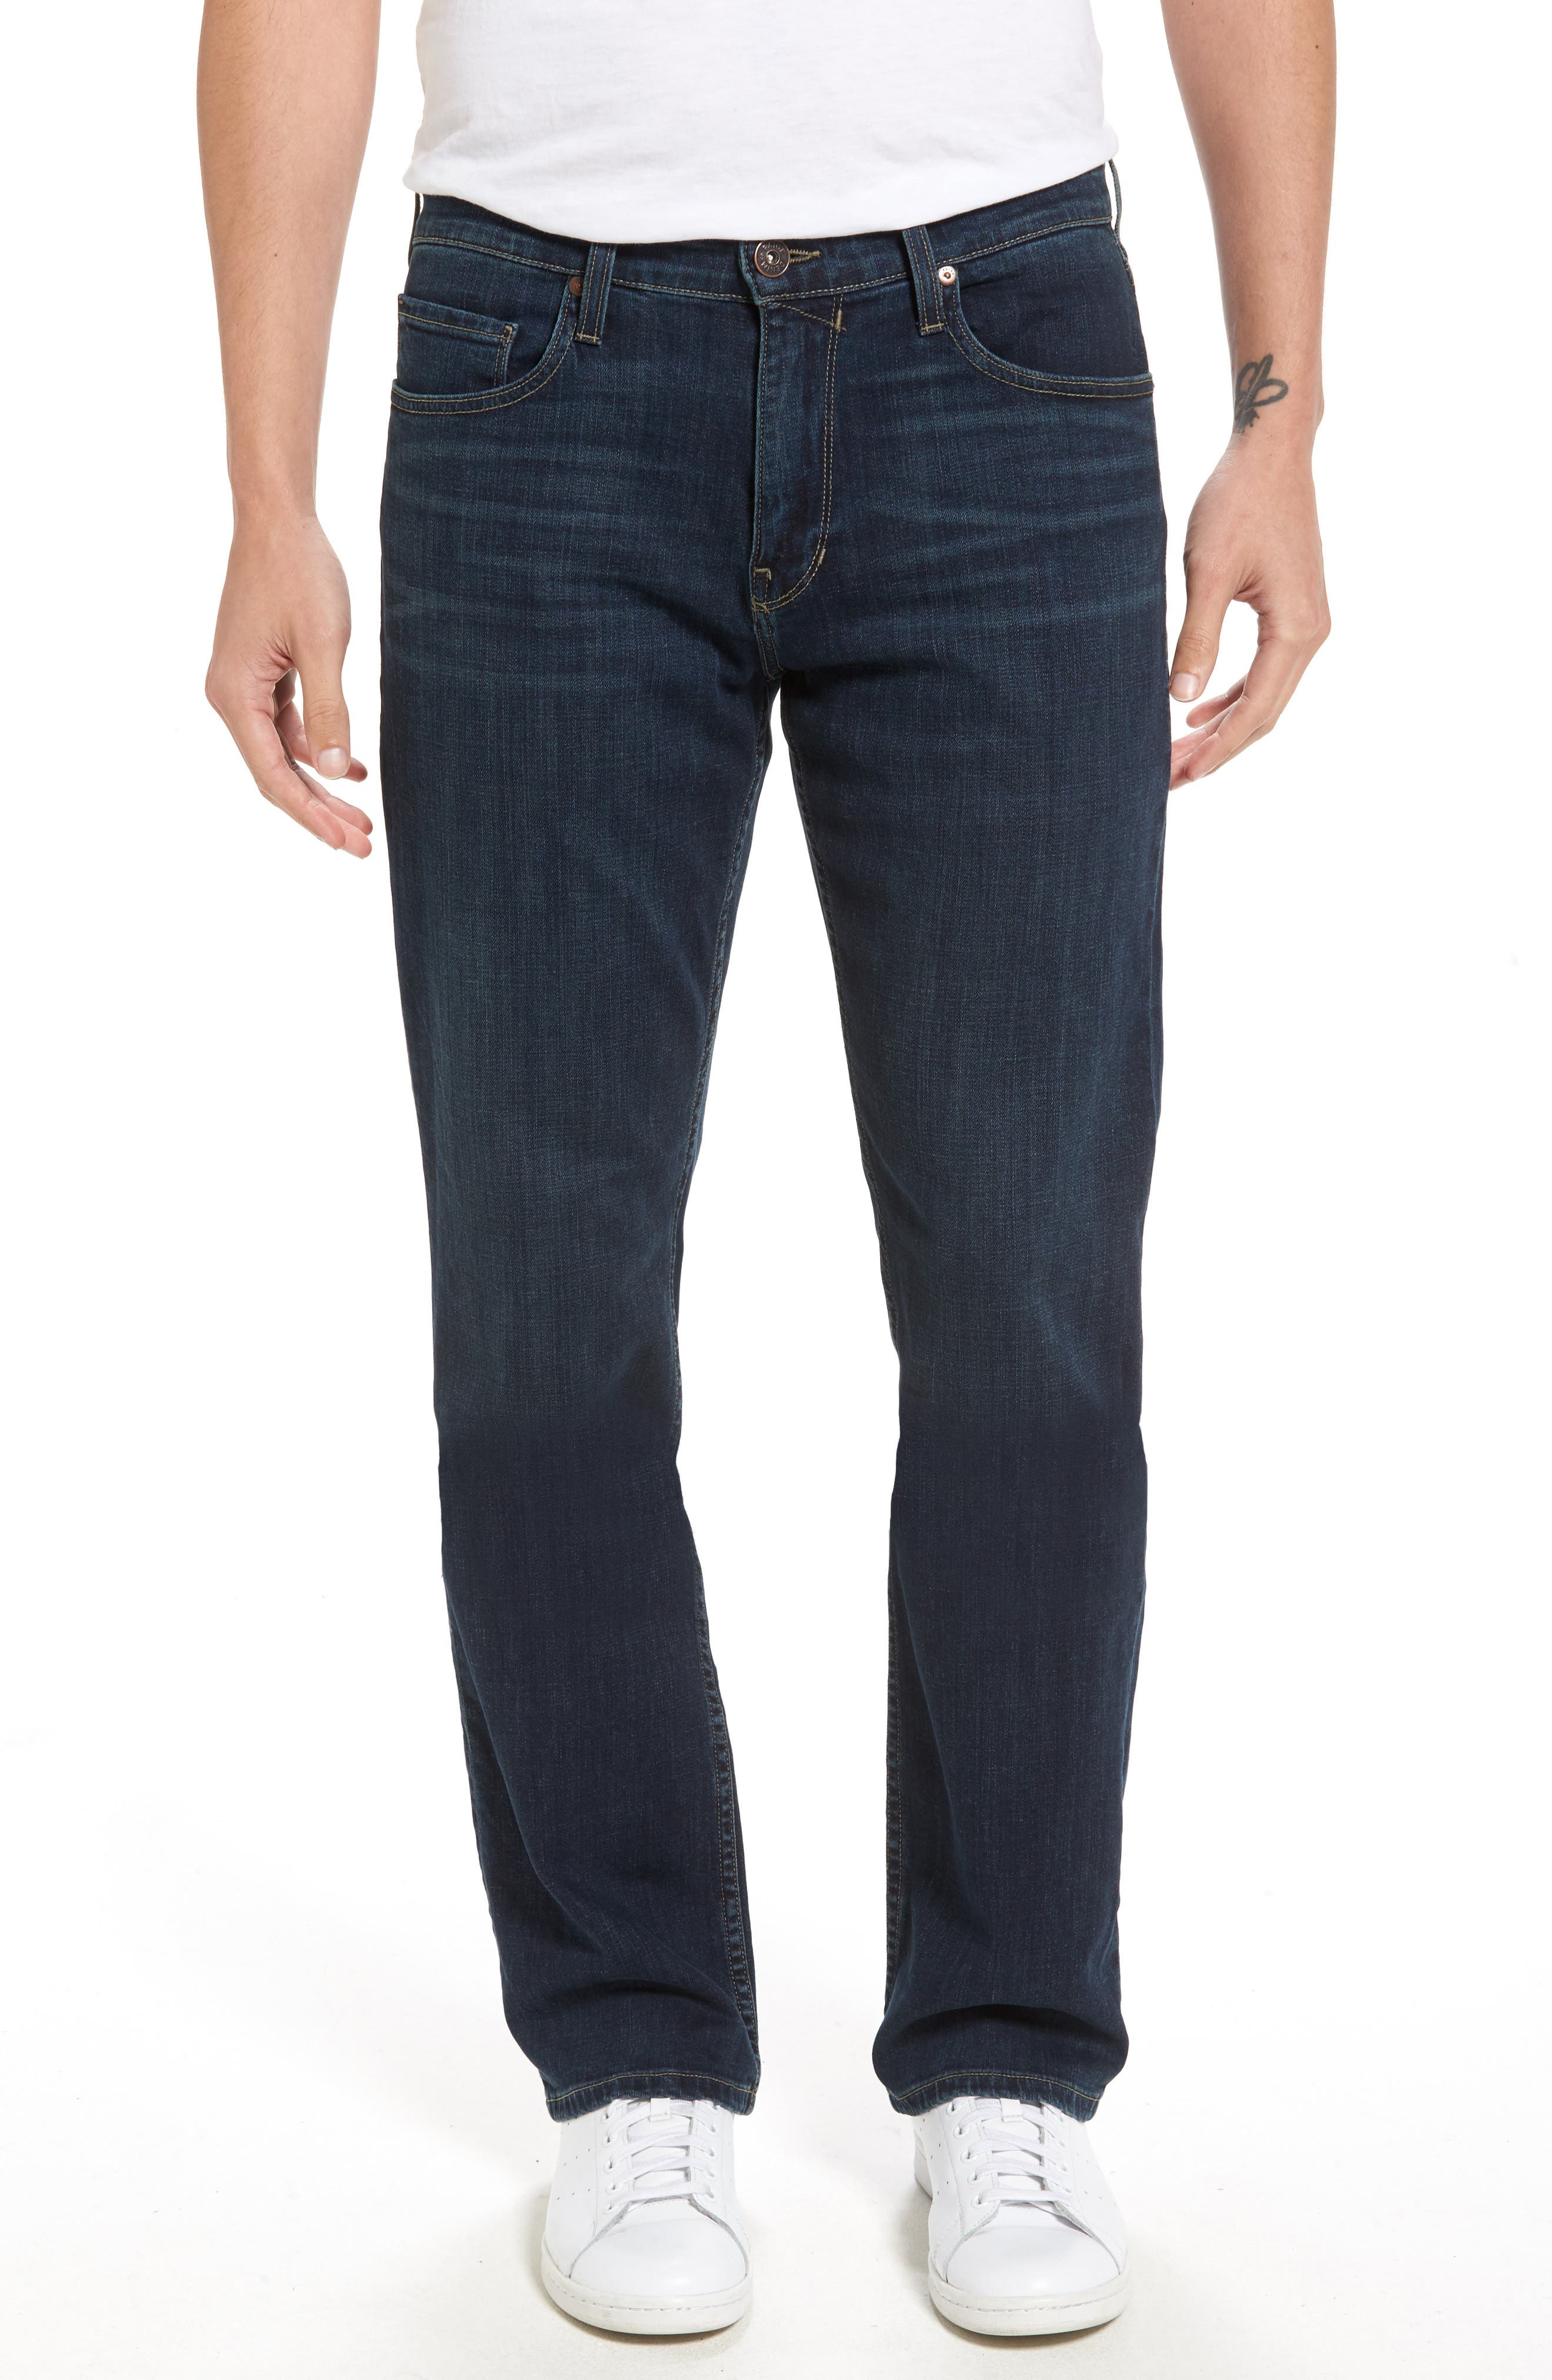 Doheny Relaxed Fit Jeans,                             Main thumbnail 1, color,                             Knowle